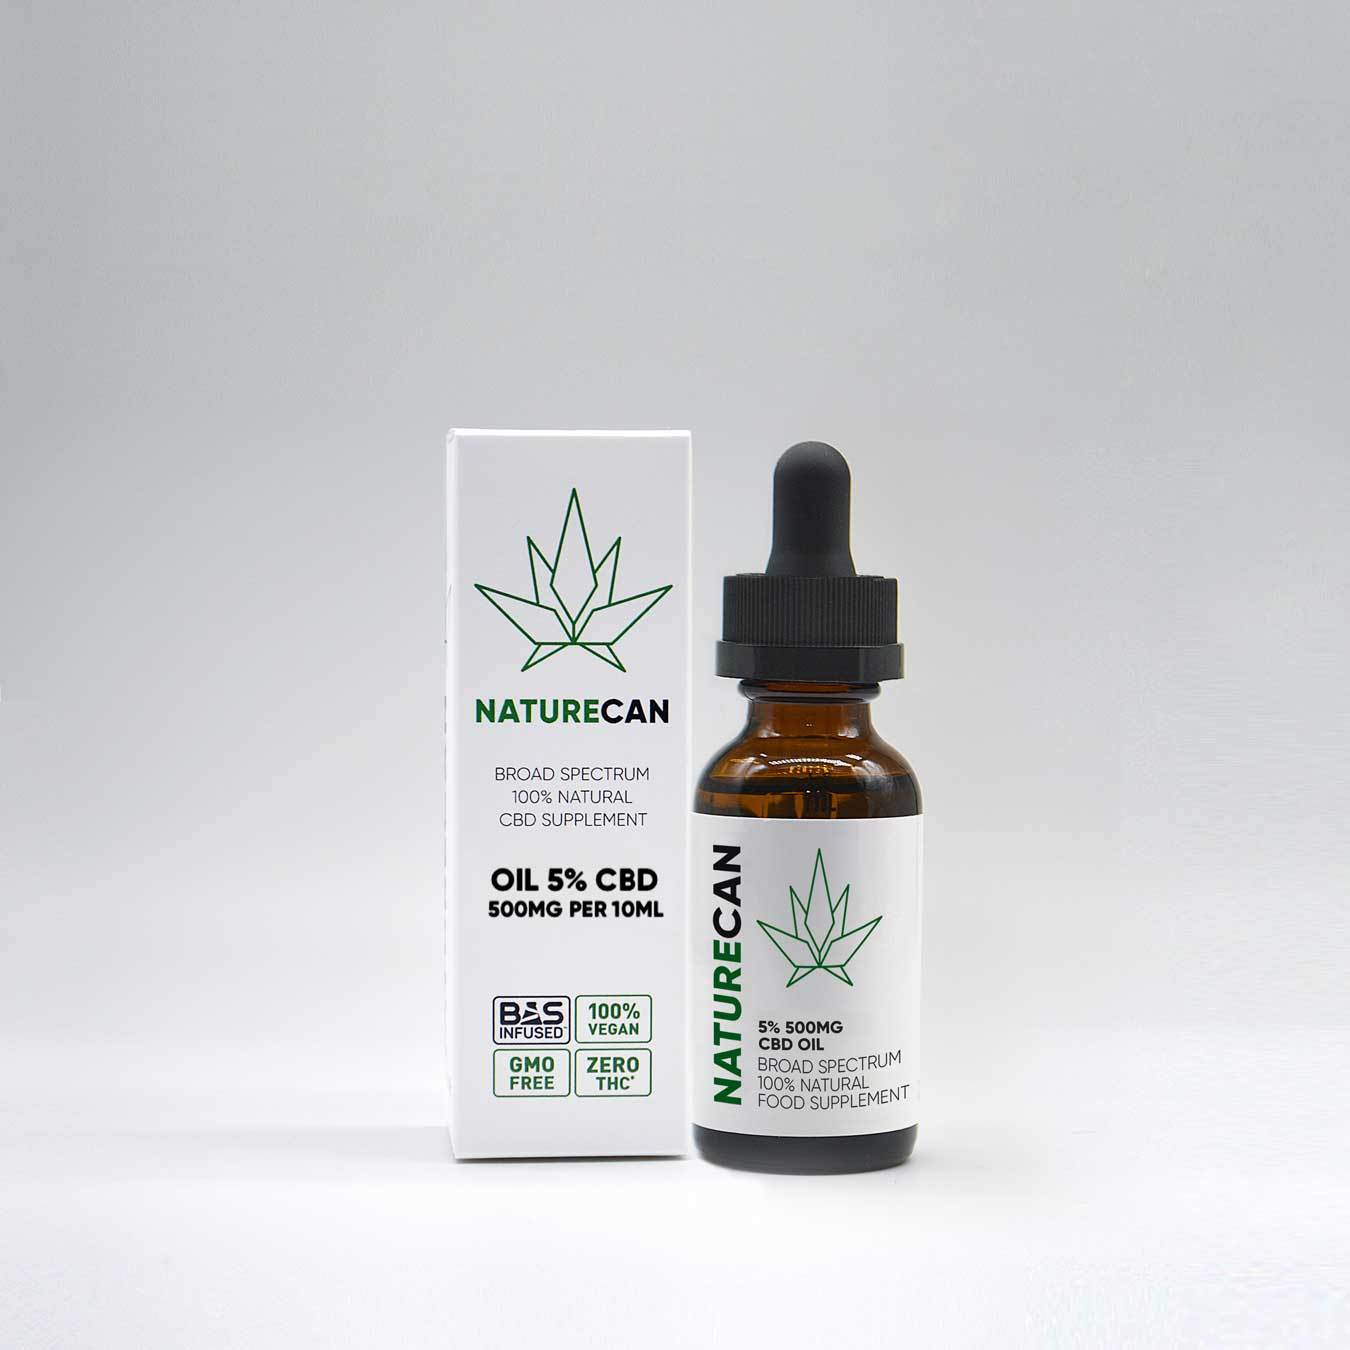 5% CBD Oil | Naturecan